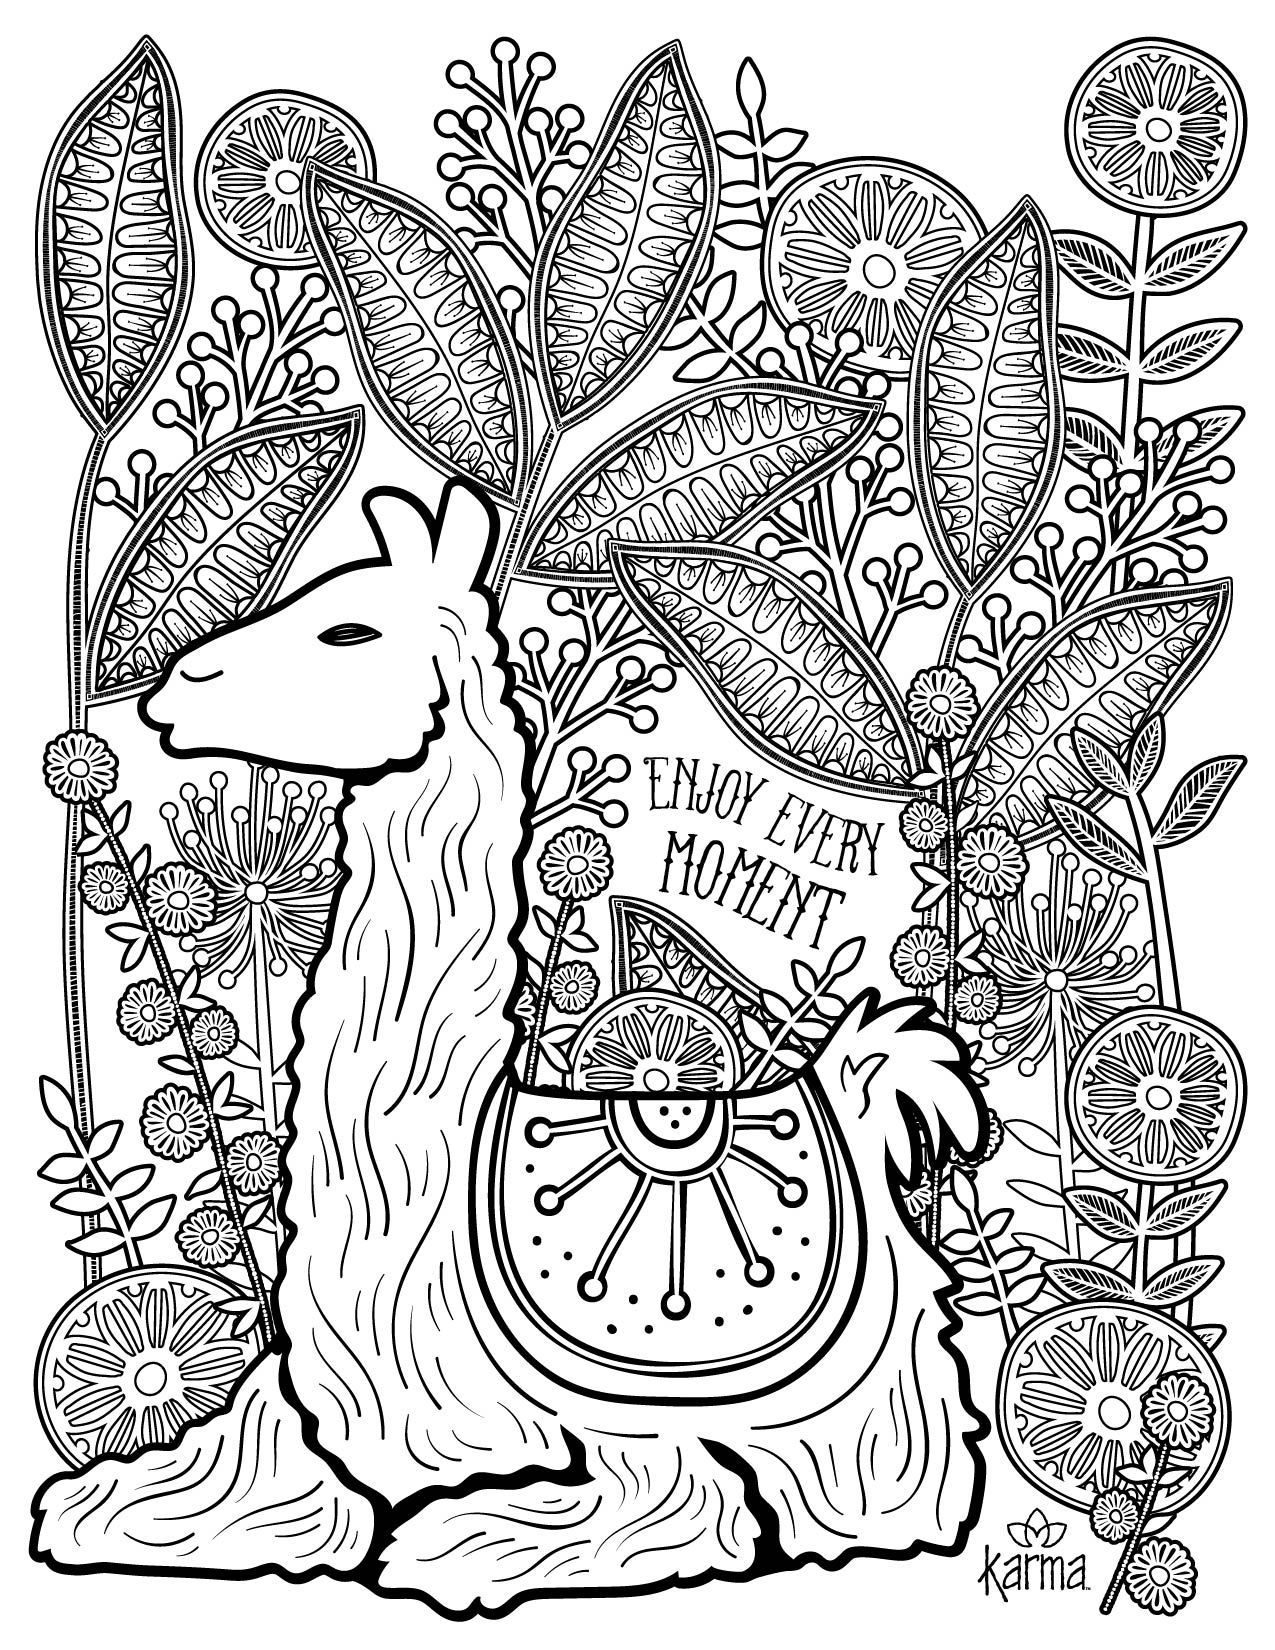 Llama! Free and printable coloring page by Karma Gifts | Adult ...